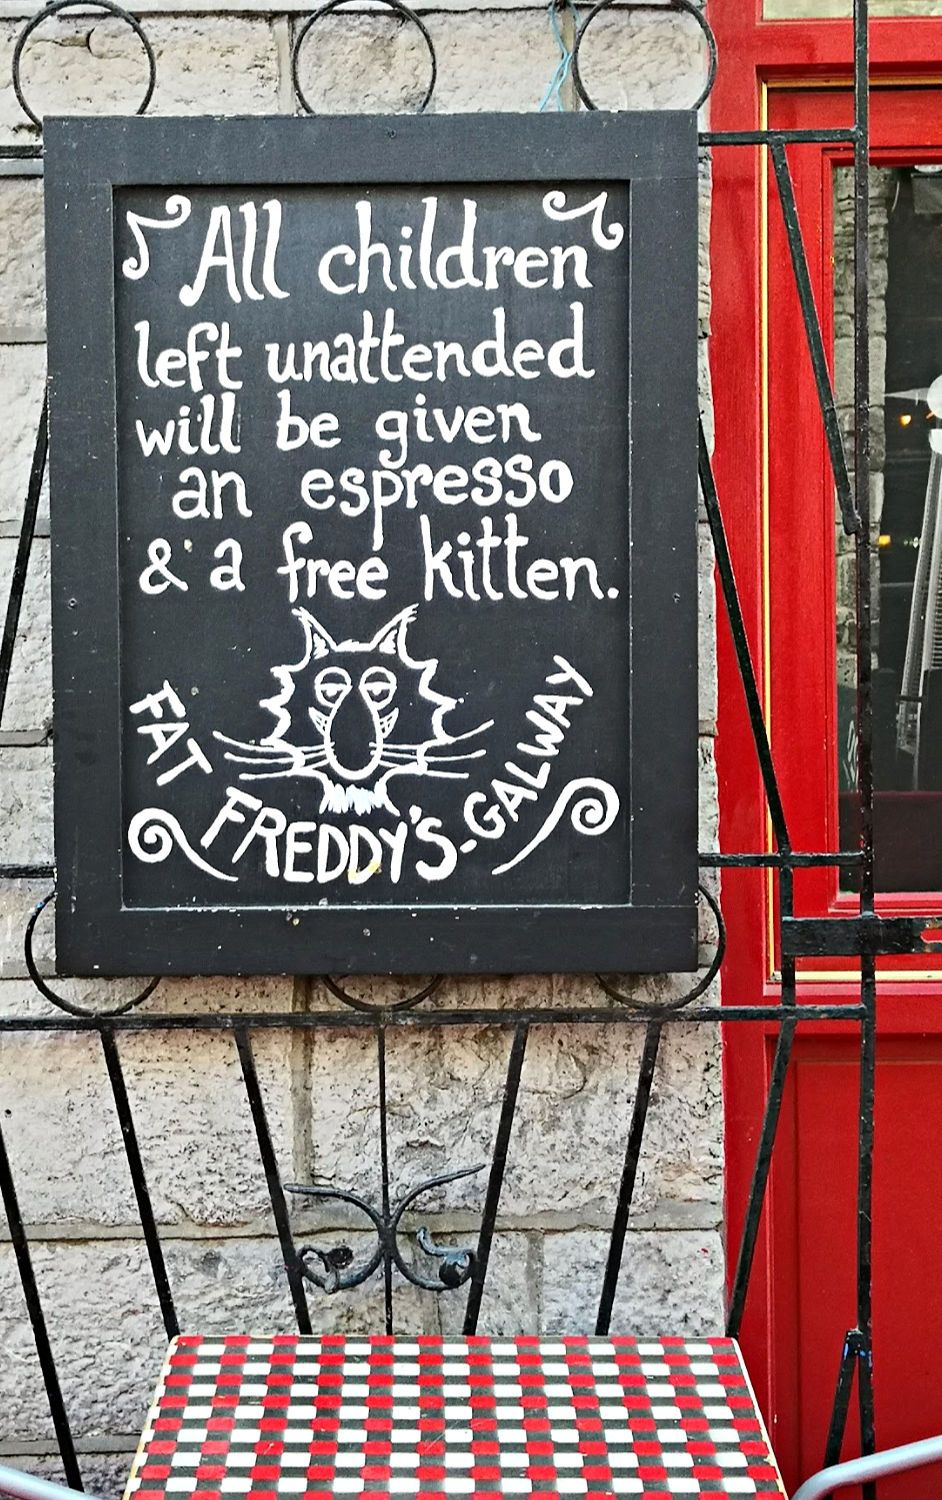 Another reason to like Galway and its cafes.